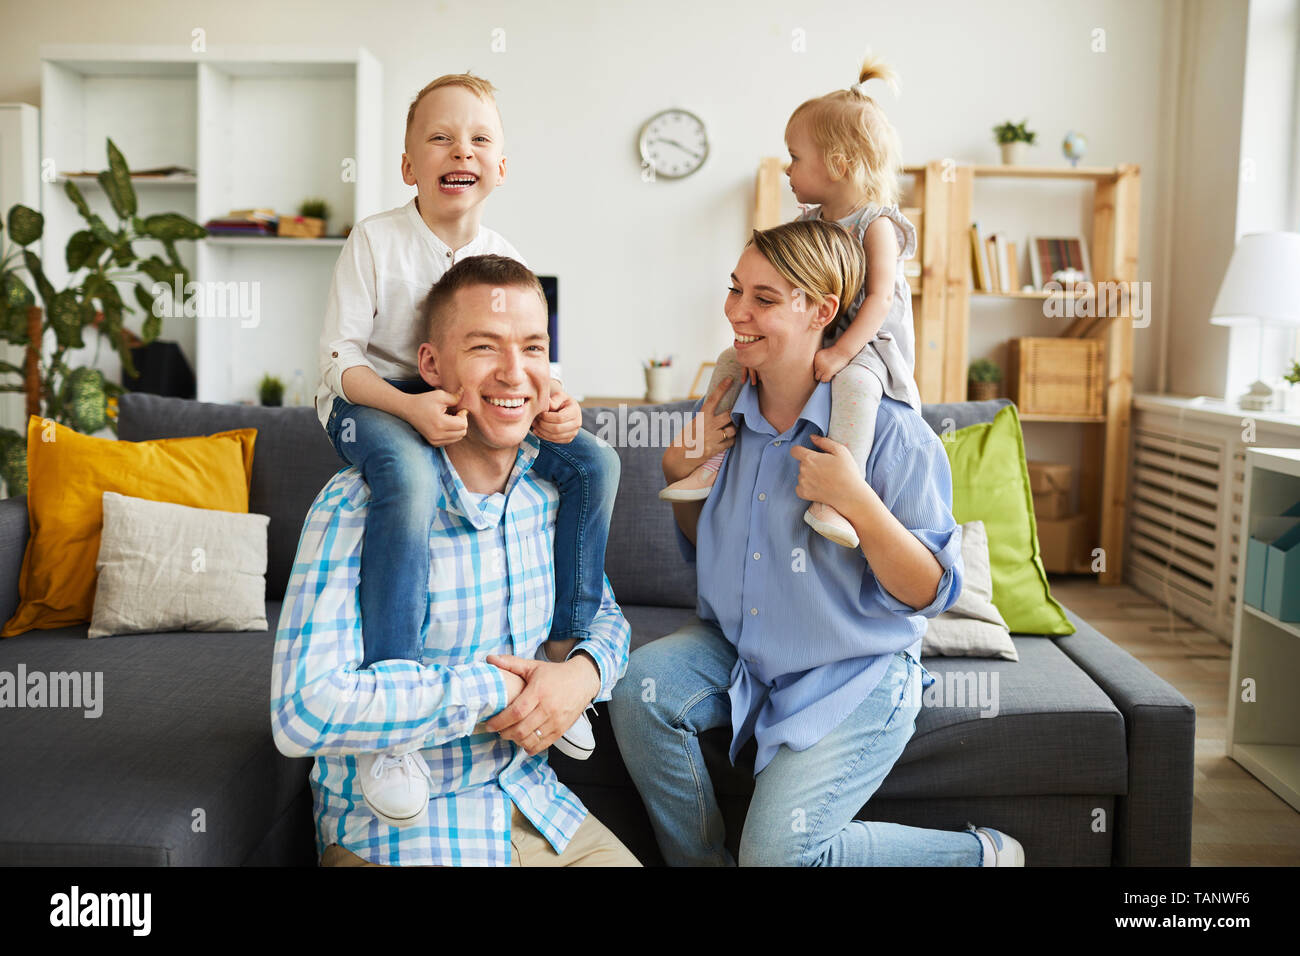 Cheerful emotional kids grimacing and riding parents necks while having fun together in living room - Stock Image